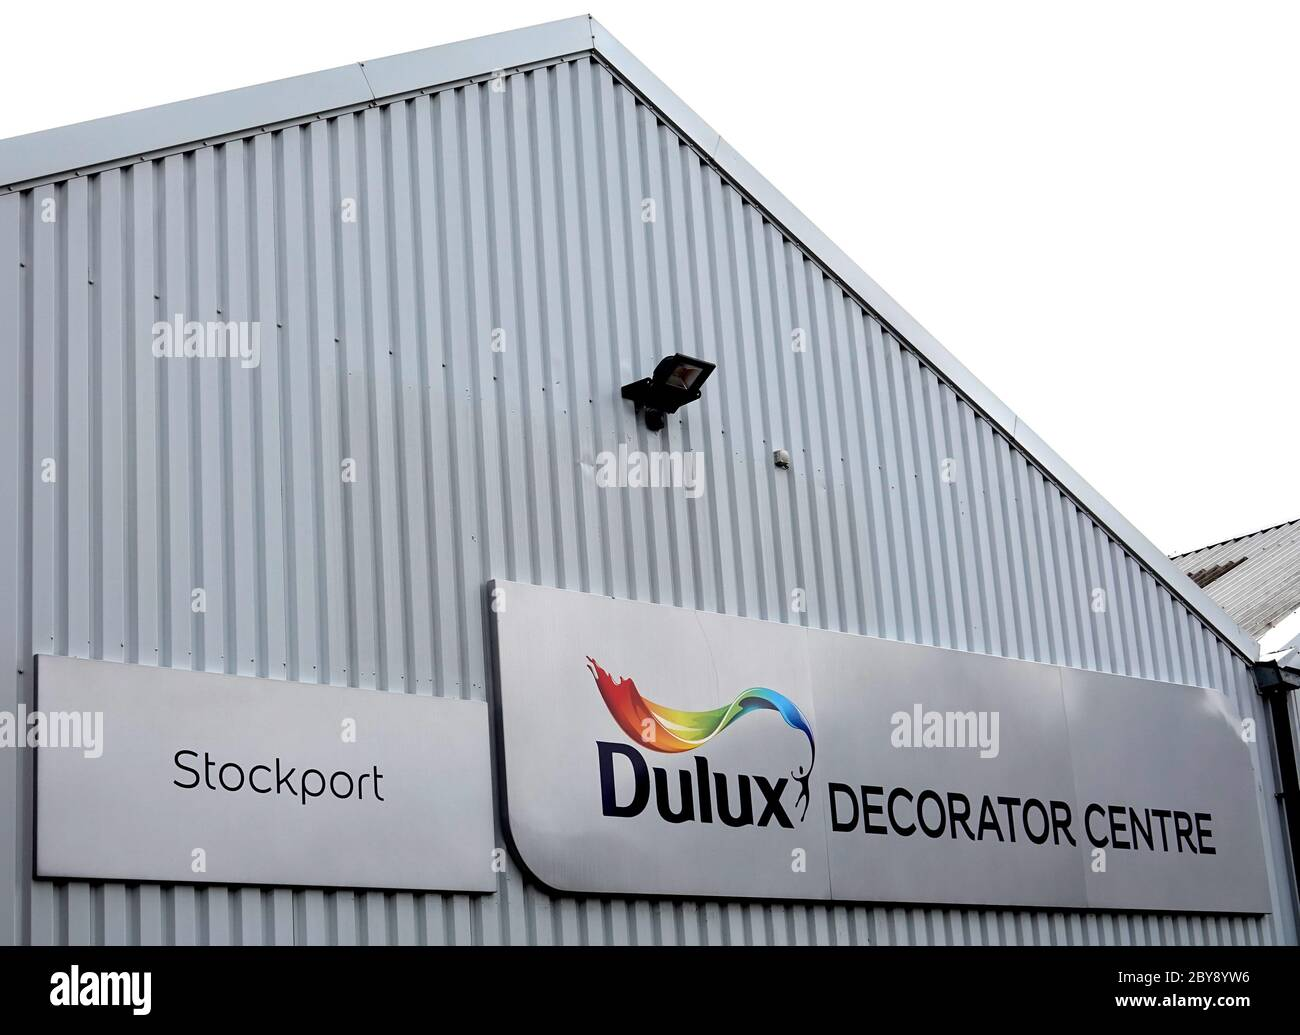 Dulux Decorator Centre in Stockport, Greater Manchester Stock Photo